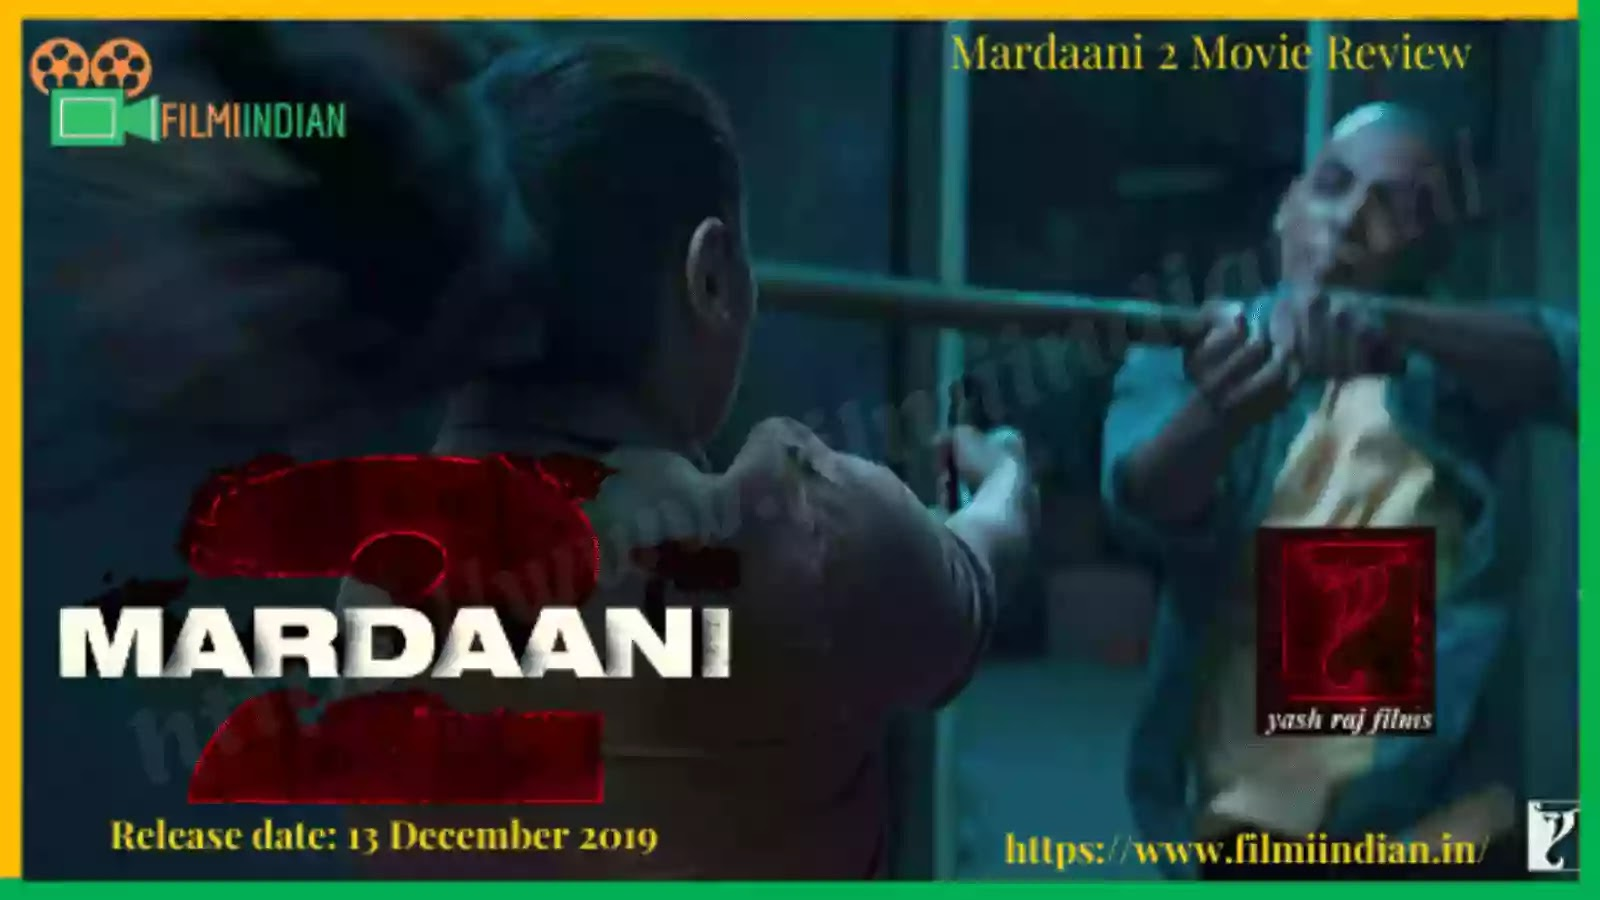 Mardaani : 2 (2019) Movie Review : Best and Honest Review